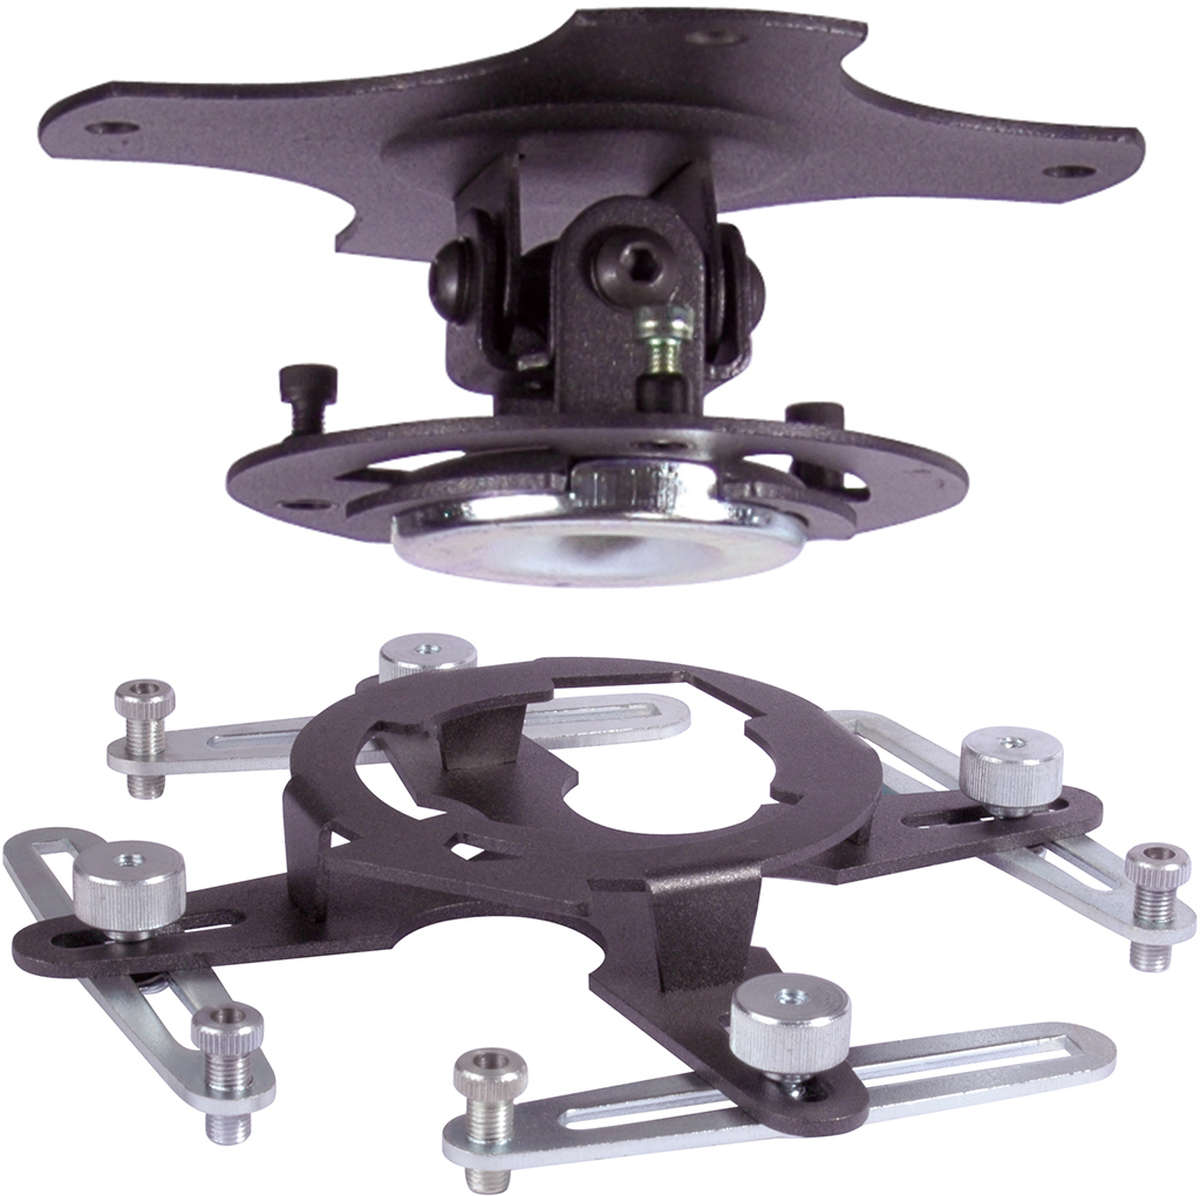 Unicol GKC-GAPU GyroLock Twist and lock close universal ceiling bracket finished in black product image